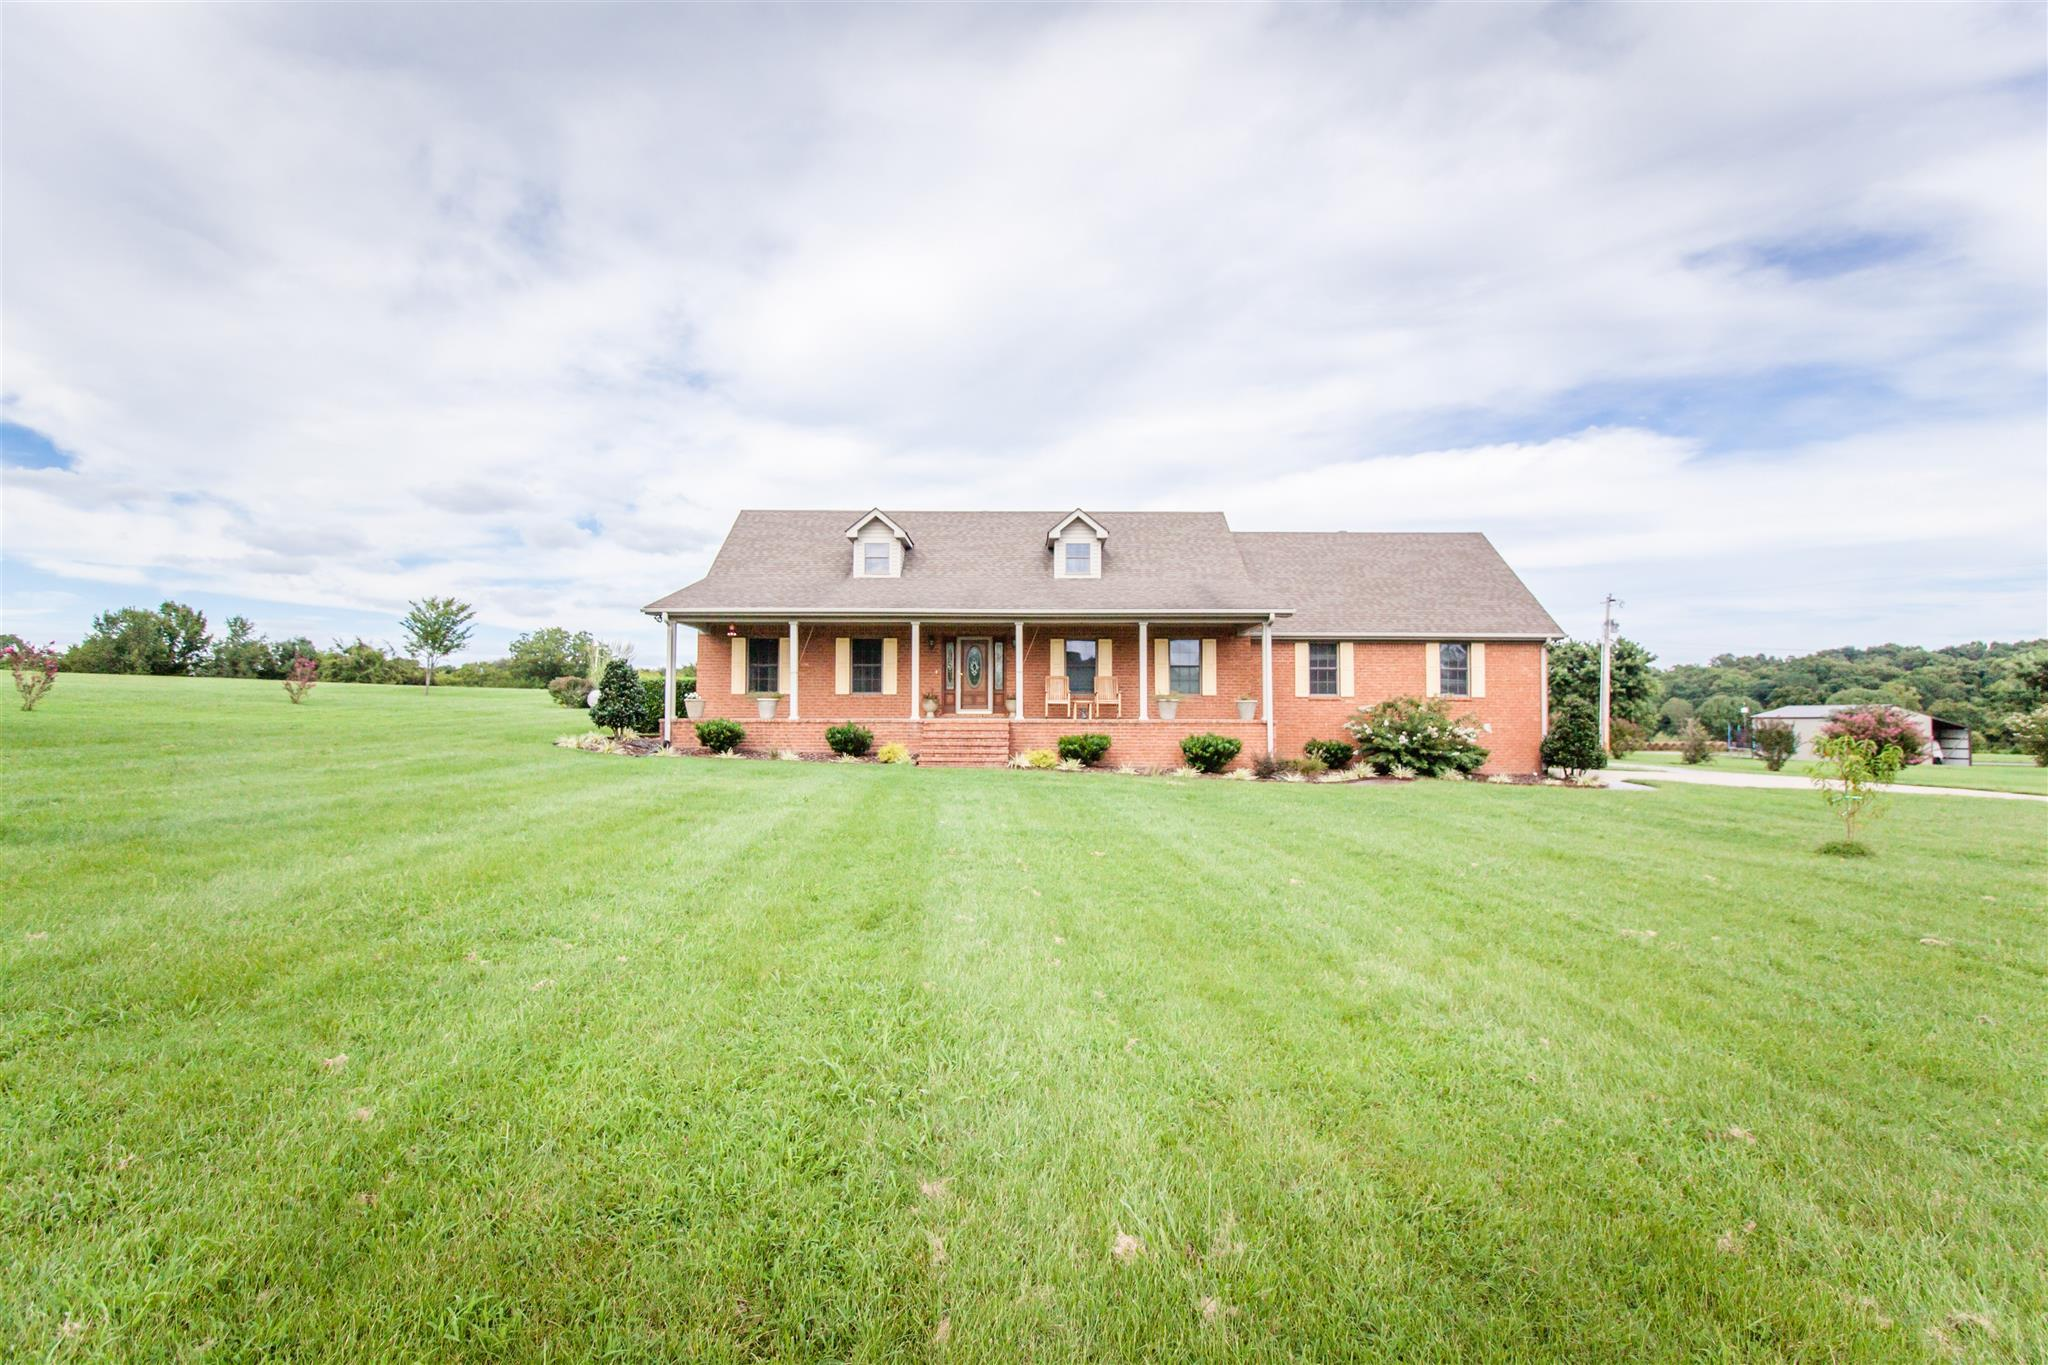 3691 Linwood Rd, Watertown, TN 37184